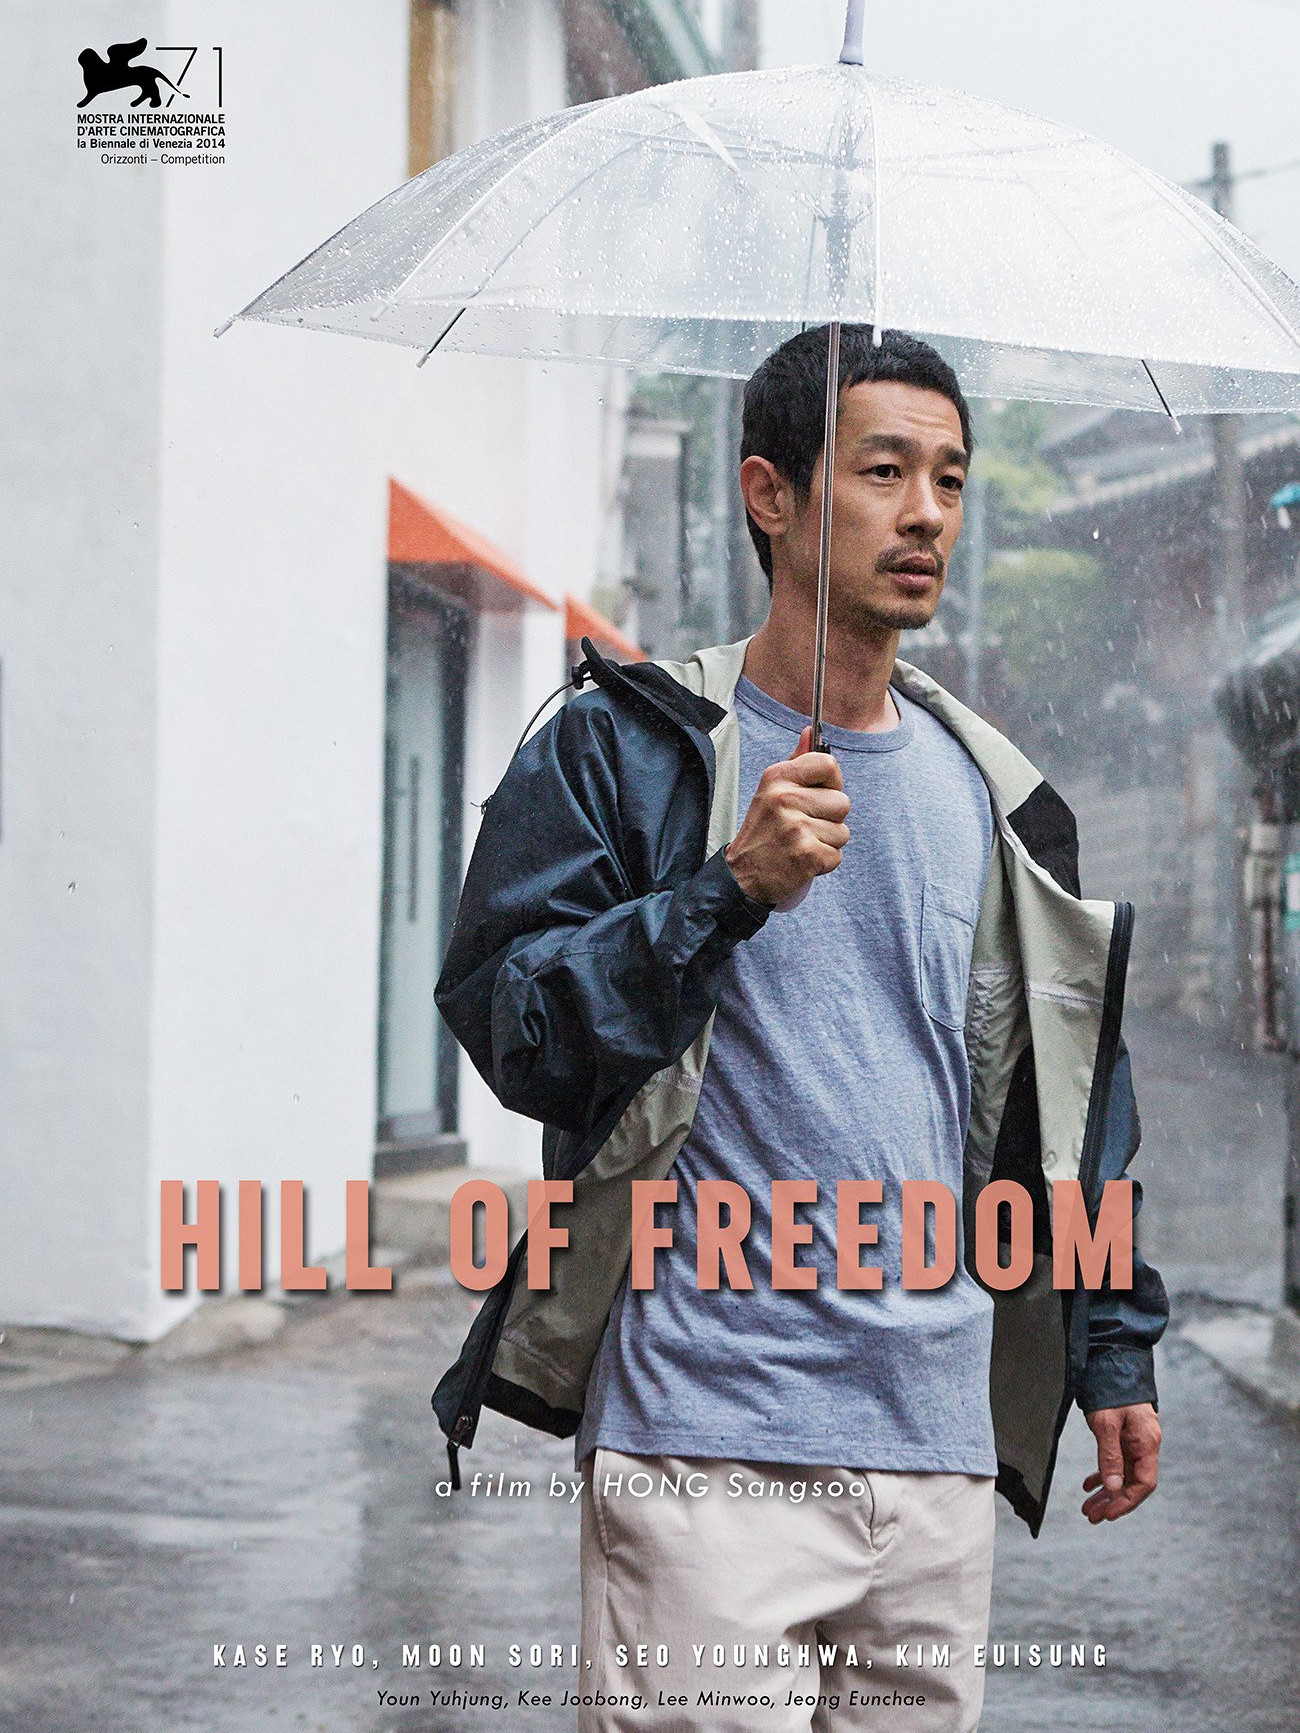 Hill of Freedom | HONG, Sangsoo (Réalisateur)